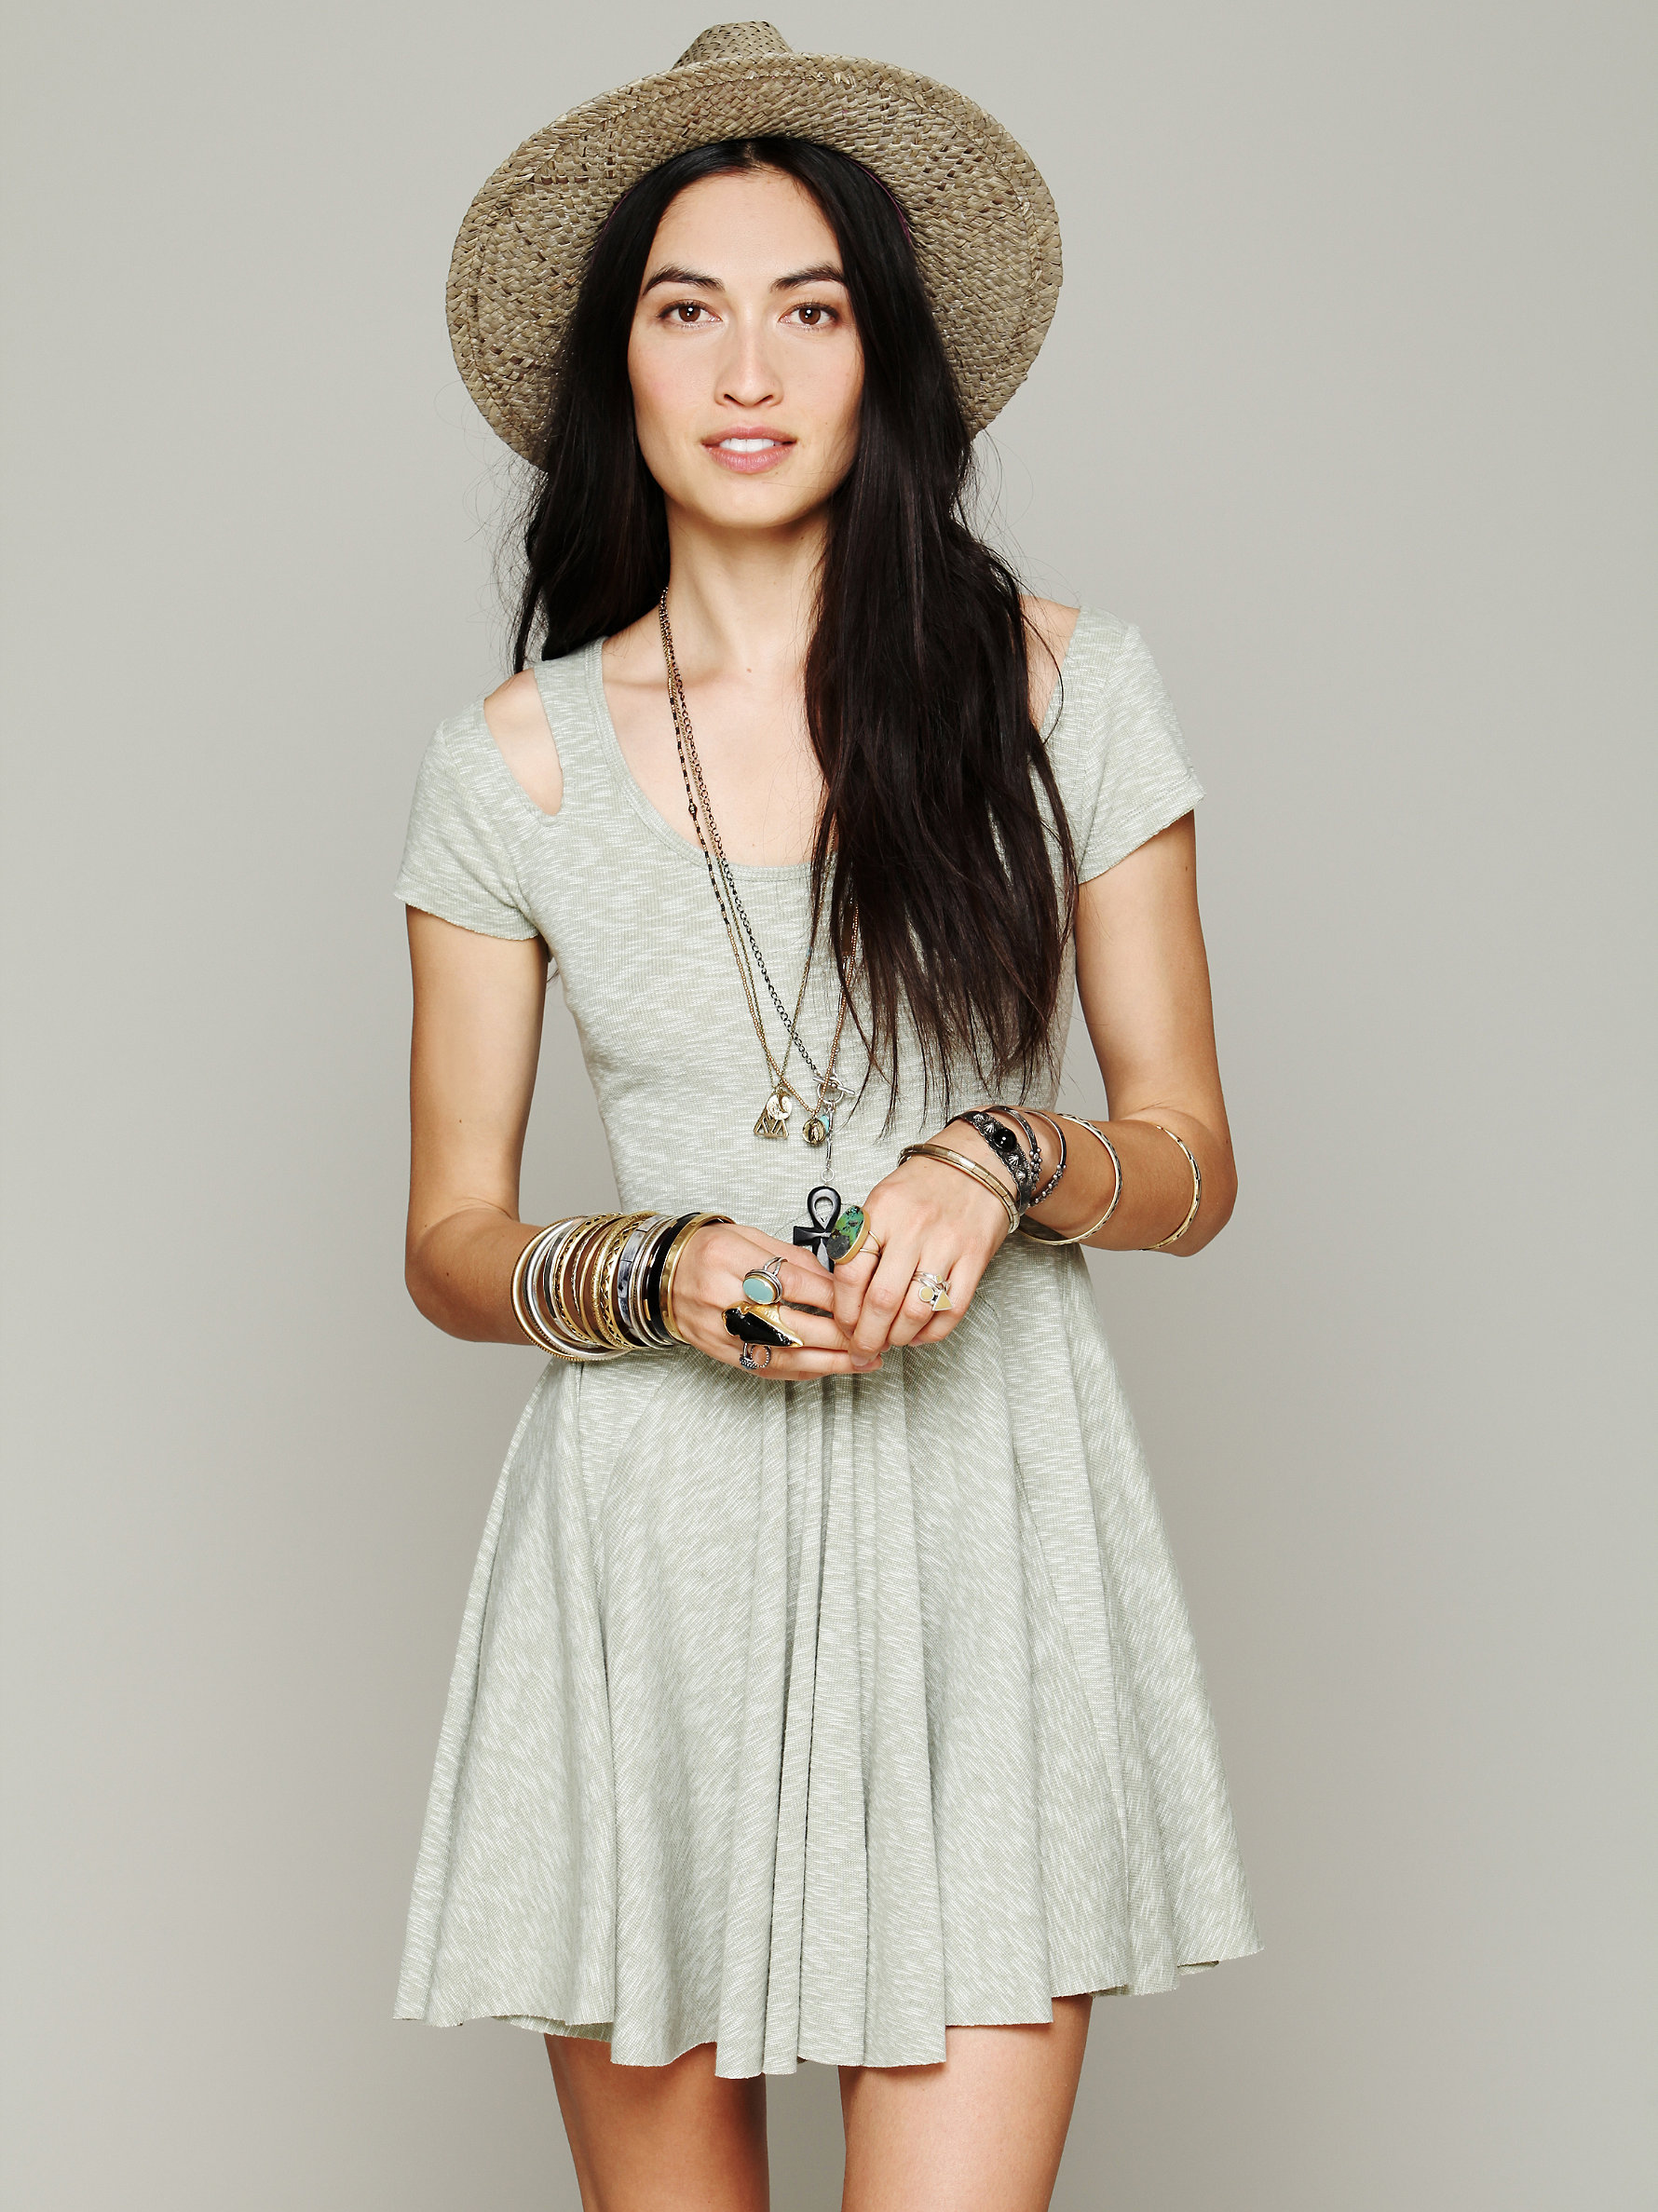 Free People Tiny Dancer Dress | Fancy Friday - The Cost of Comfort - Cute Loungewear